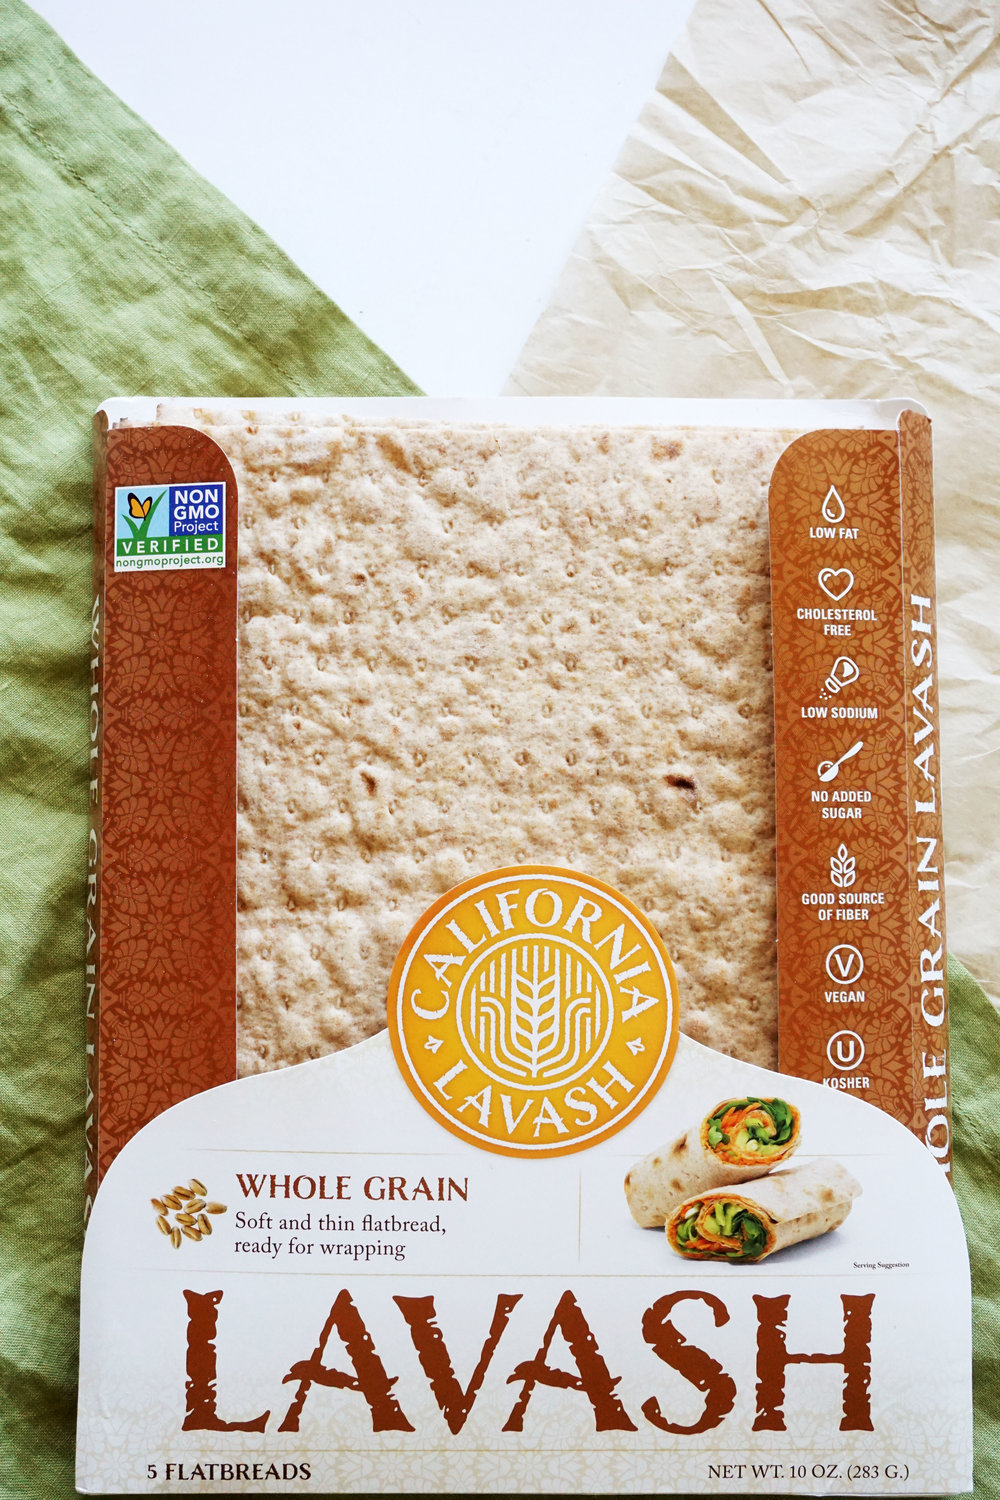 California Lavash Whole-Grain Flatbread